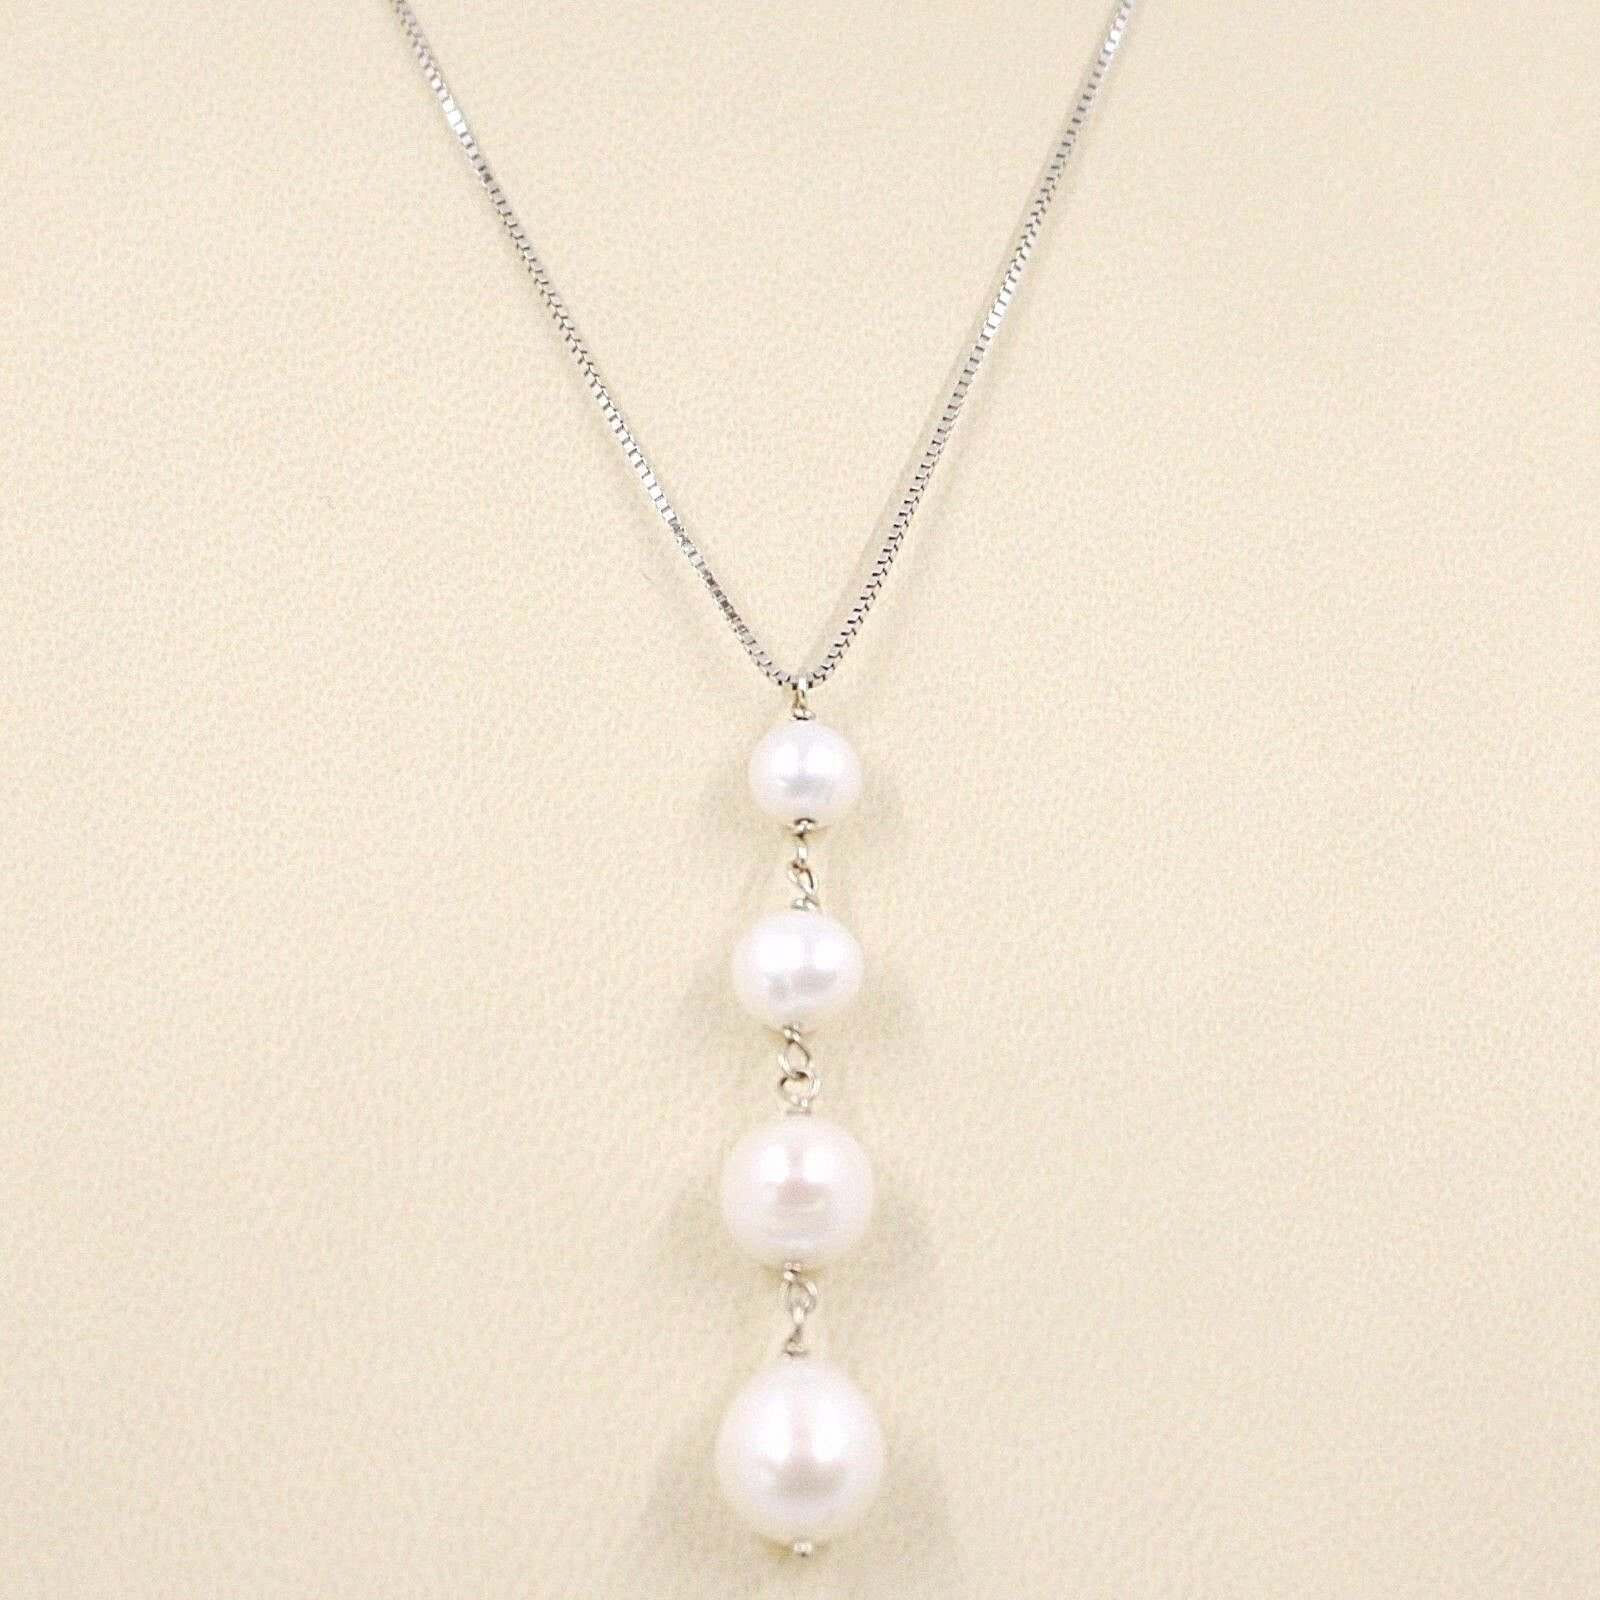 Necklace White Gold 18K, Pendant White Pearls, round and Drop, Chain Venetian